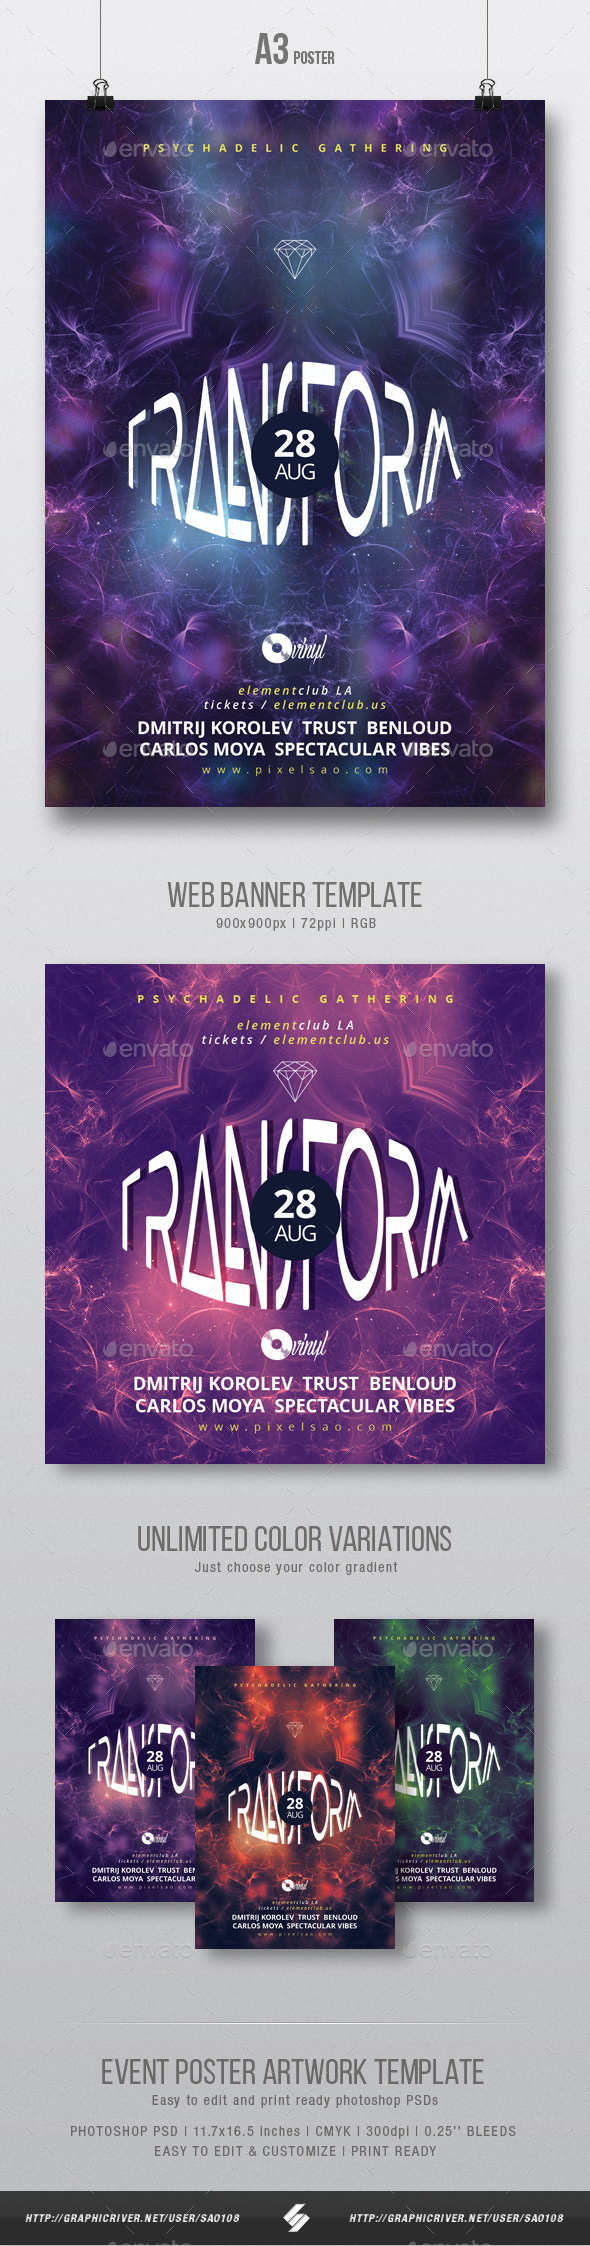 Transform - Psytrance Flyer / Poster Artwork Template A3 - Clubs & Parties Events